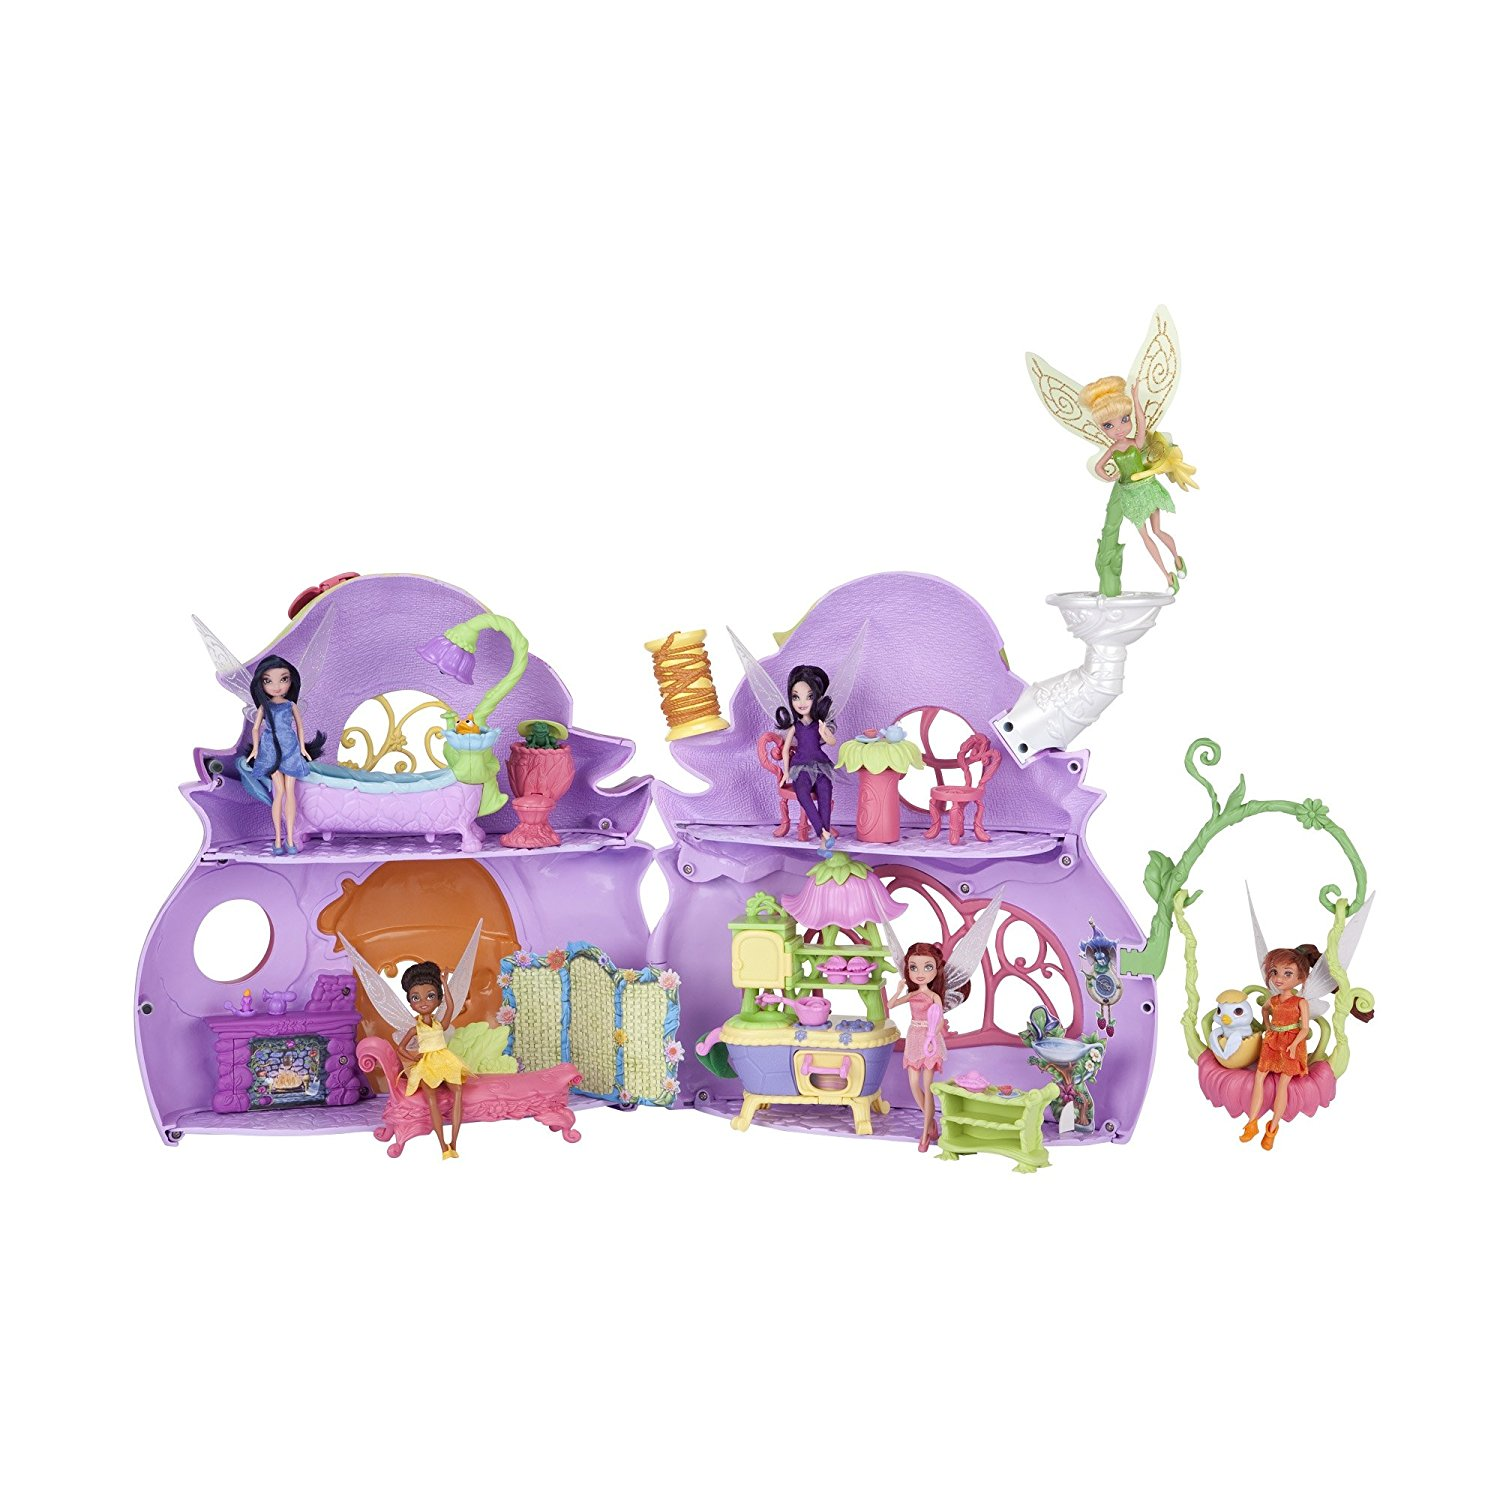 Disney Fairies Ultimate Fairy House - Tink's Pixie Cottage